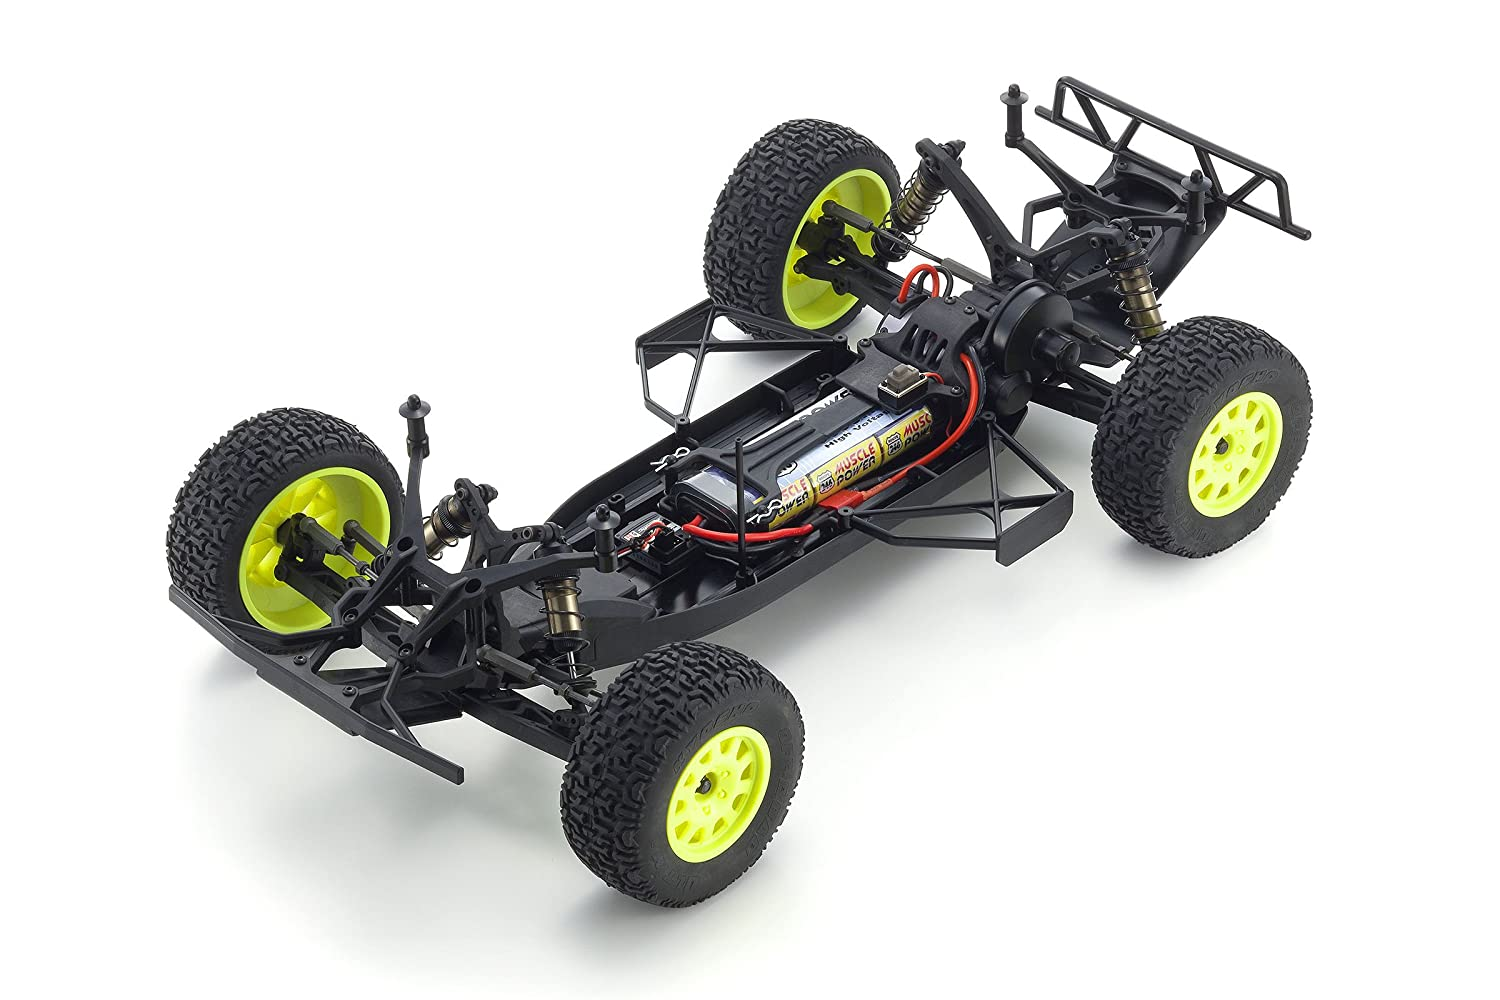 Kyosho Ultima Ready Short Course Rc Truck Toys Games Additionally Traxxas Slash 4x4 Slipper Clutch On Parts Diagram